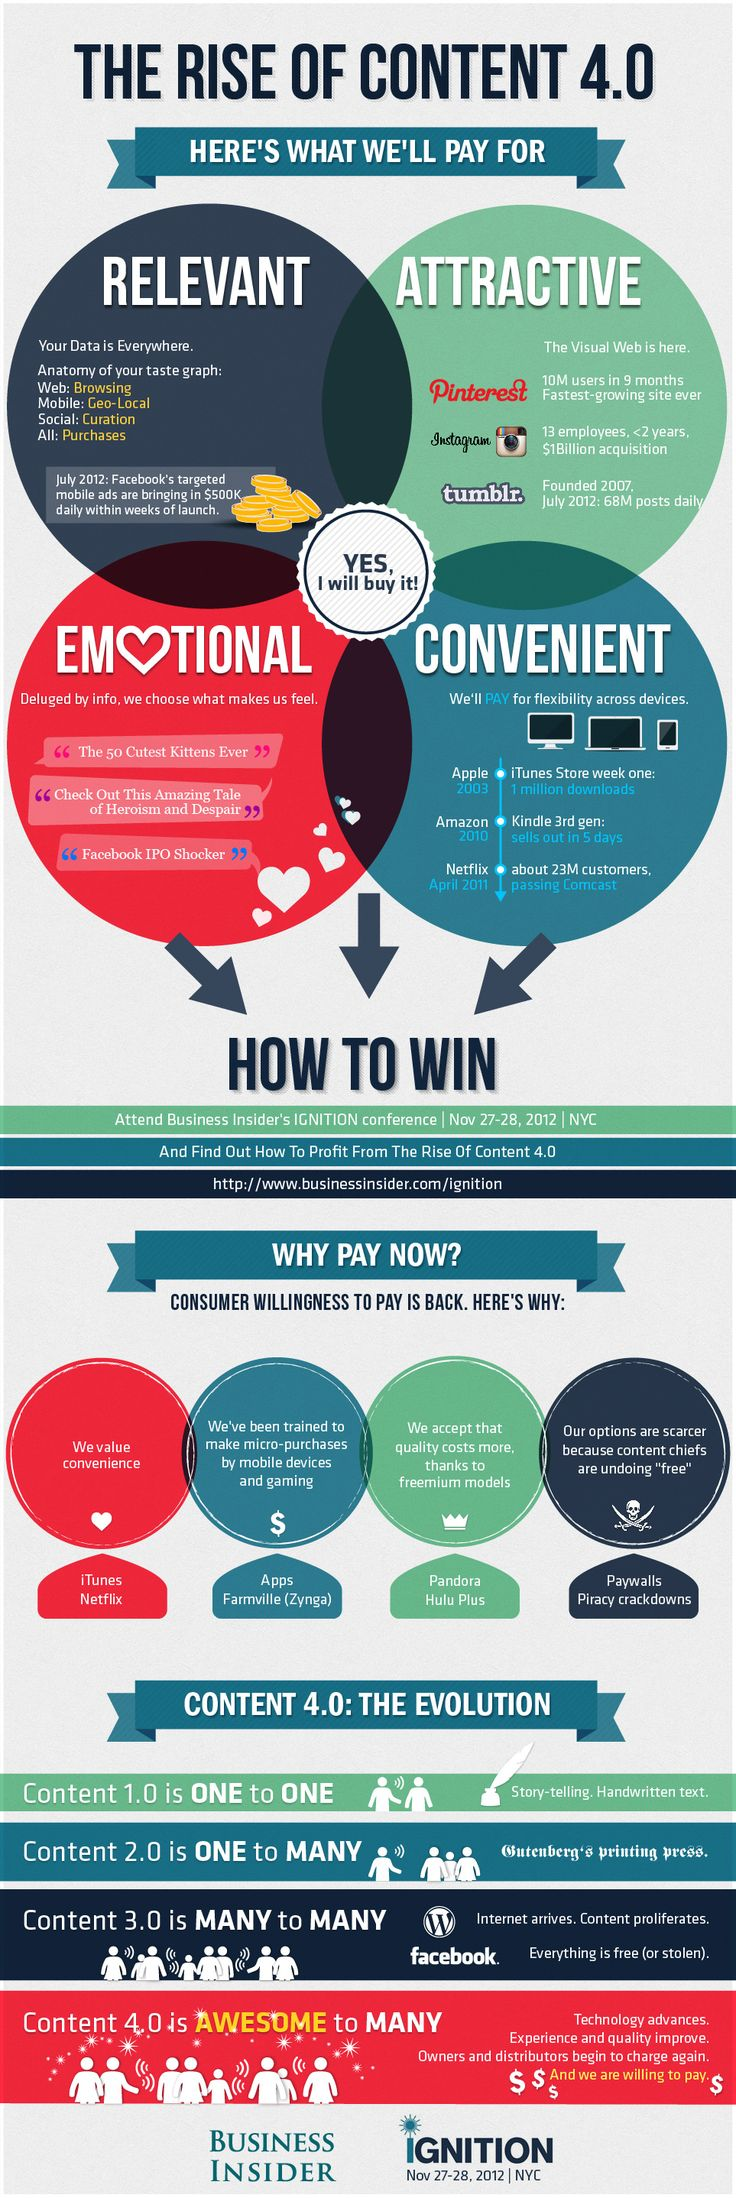 Welcome Content 4.0 - it's about time! #Infographic